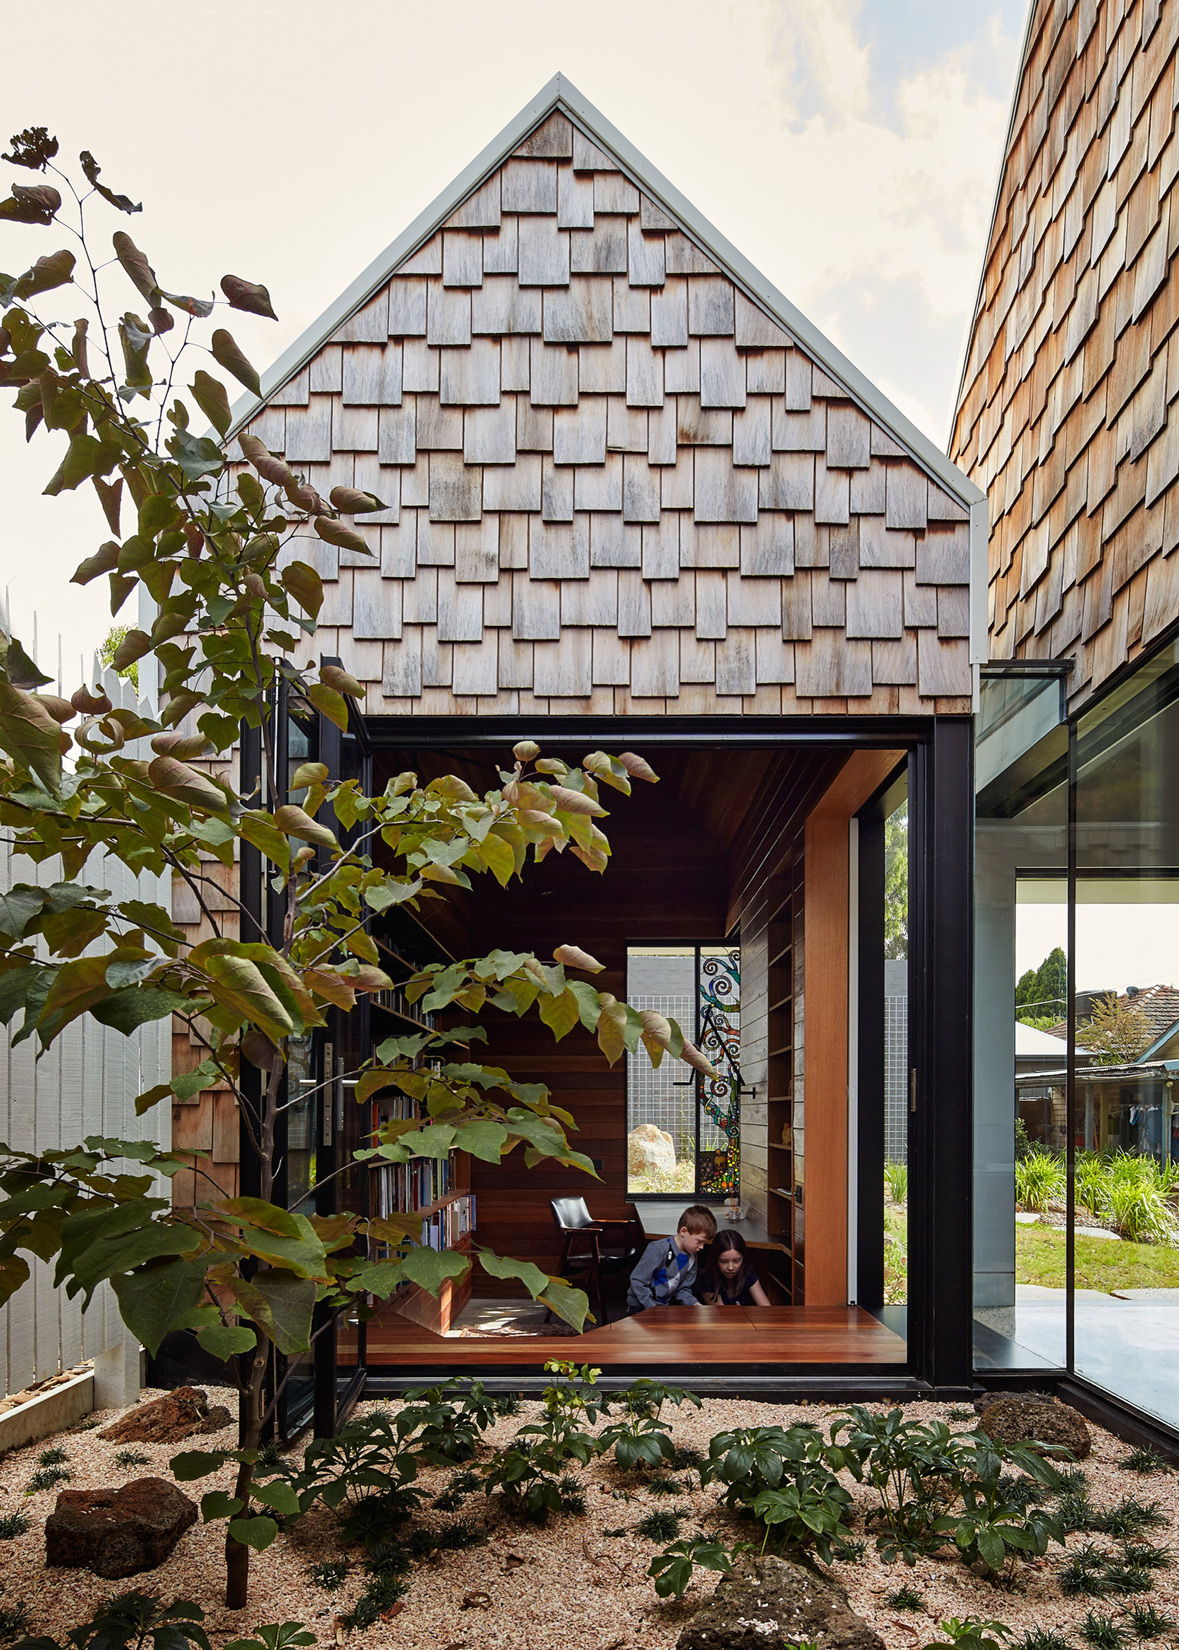 Tower House / Andrew Maynard Architects (25)